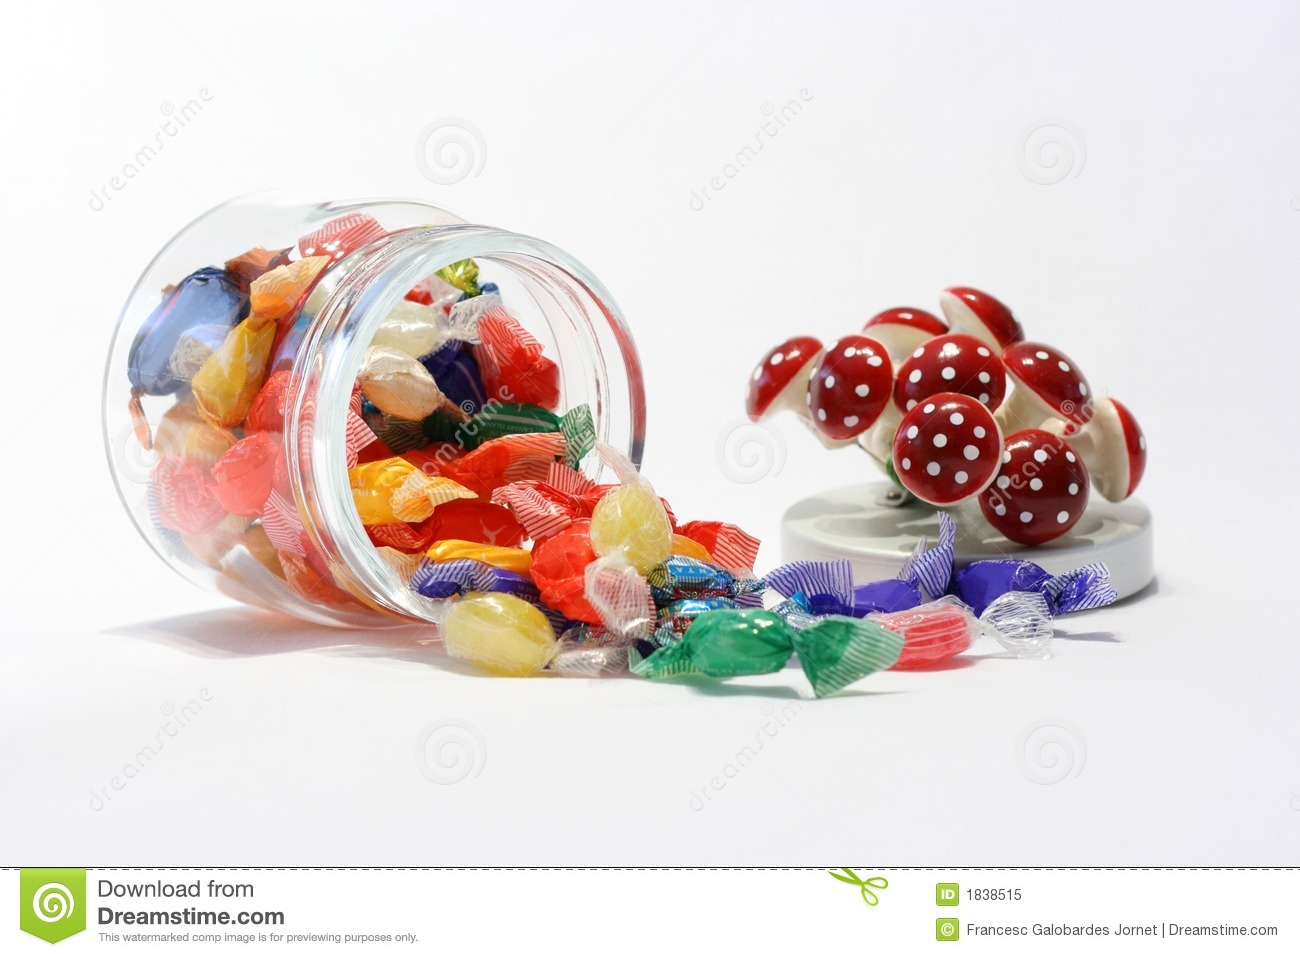 Jar of candy with decorative lid